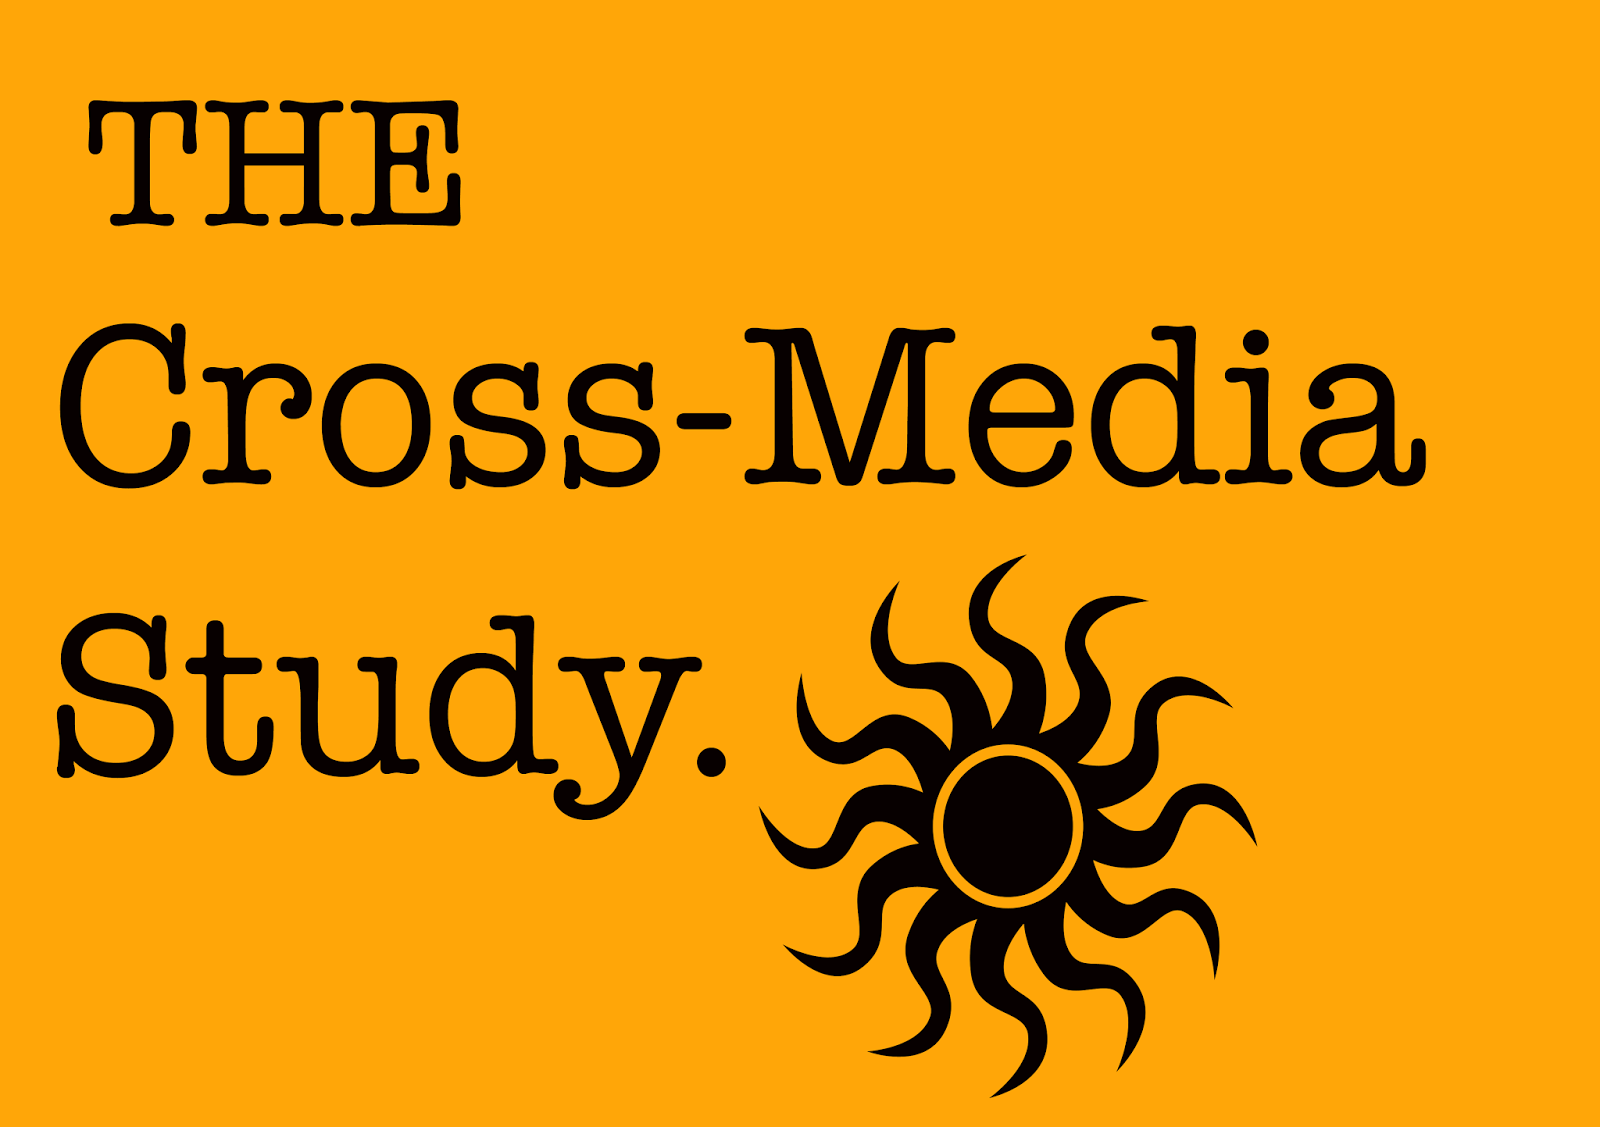 fishymedia resources for a2 as media studies 2014 session was to make sure that students are completely aware of the potential content that can be used to construct the first cross media study essay